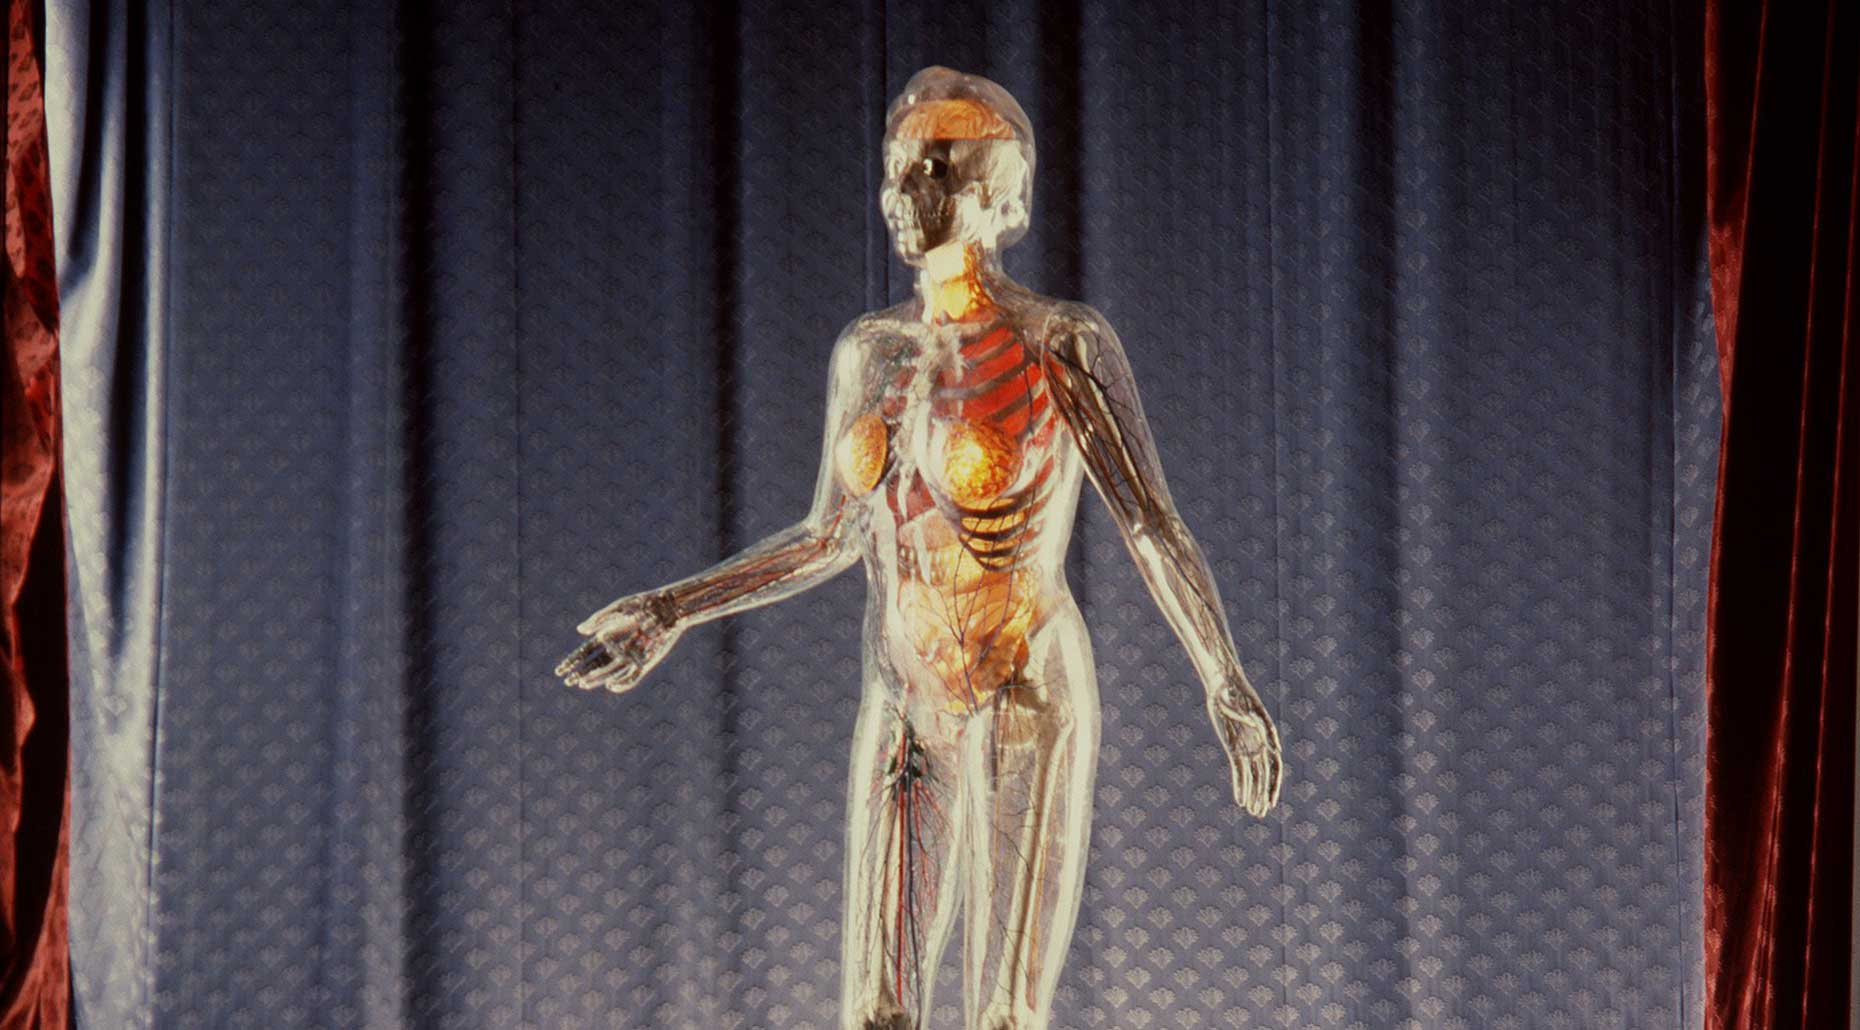 The Transparent Woman, 1950 to 1953, made by the German Health Museum, Germany, photographed by Geoff Friend. Powerhouse Collection.